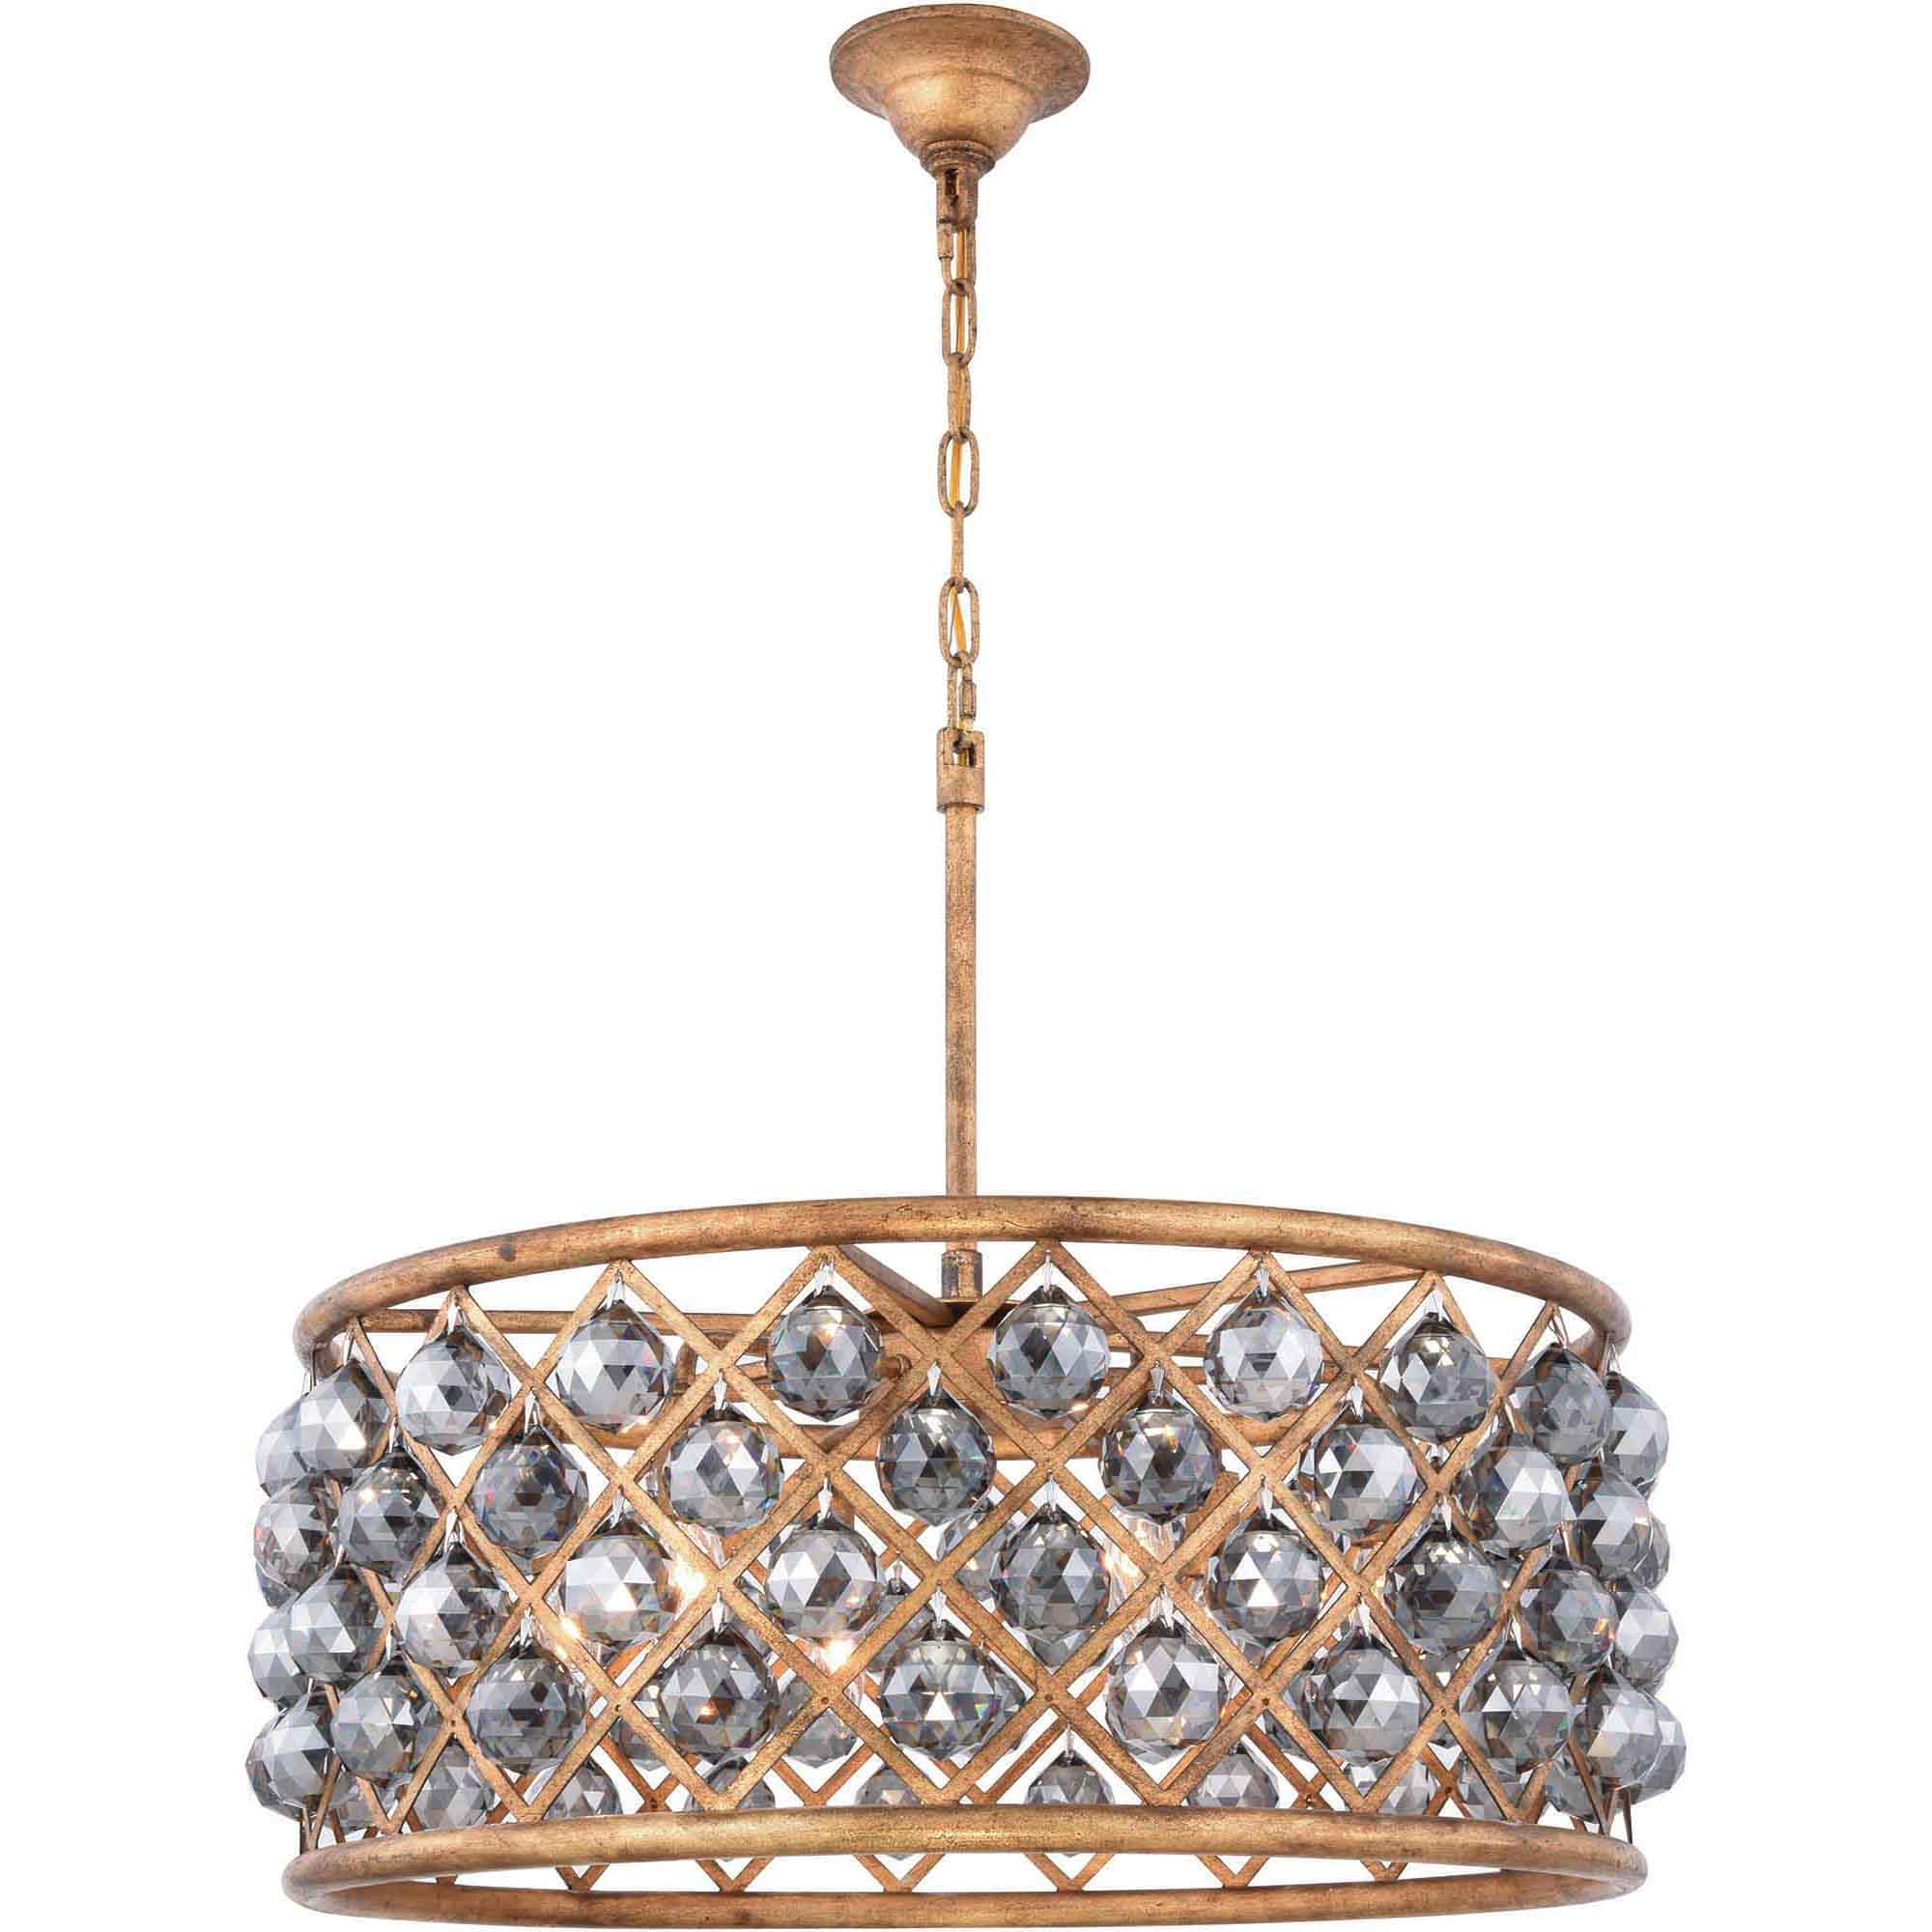 "Madison Collection Pendant Lamp D:25"" H:10.5"" Lt:6 Golden Iron Finish Royal Cut Silver Shade (Grey)"